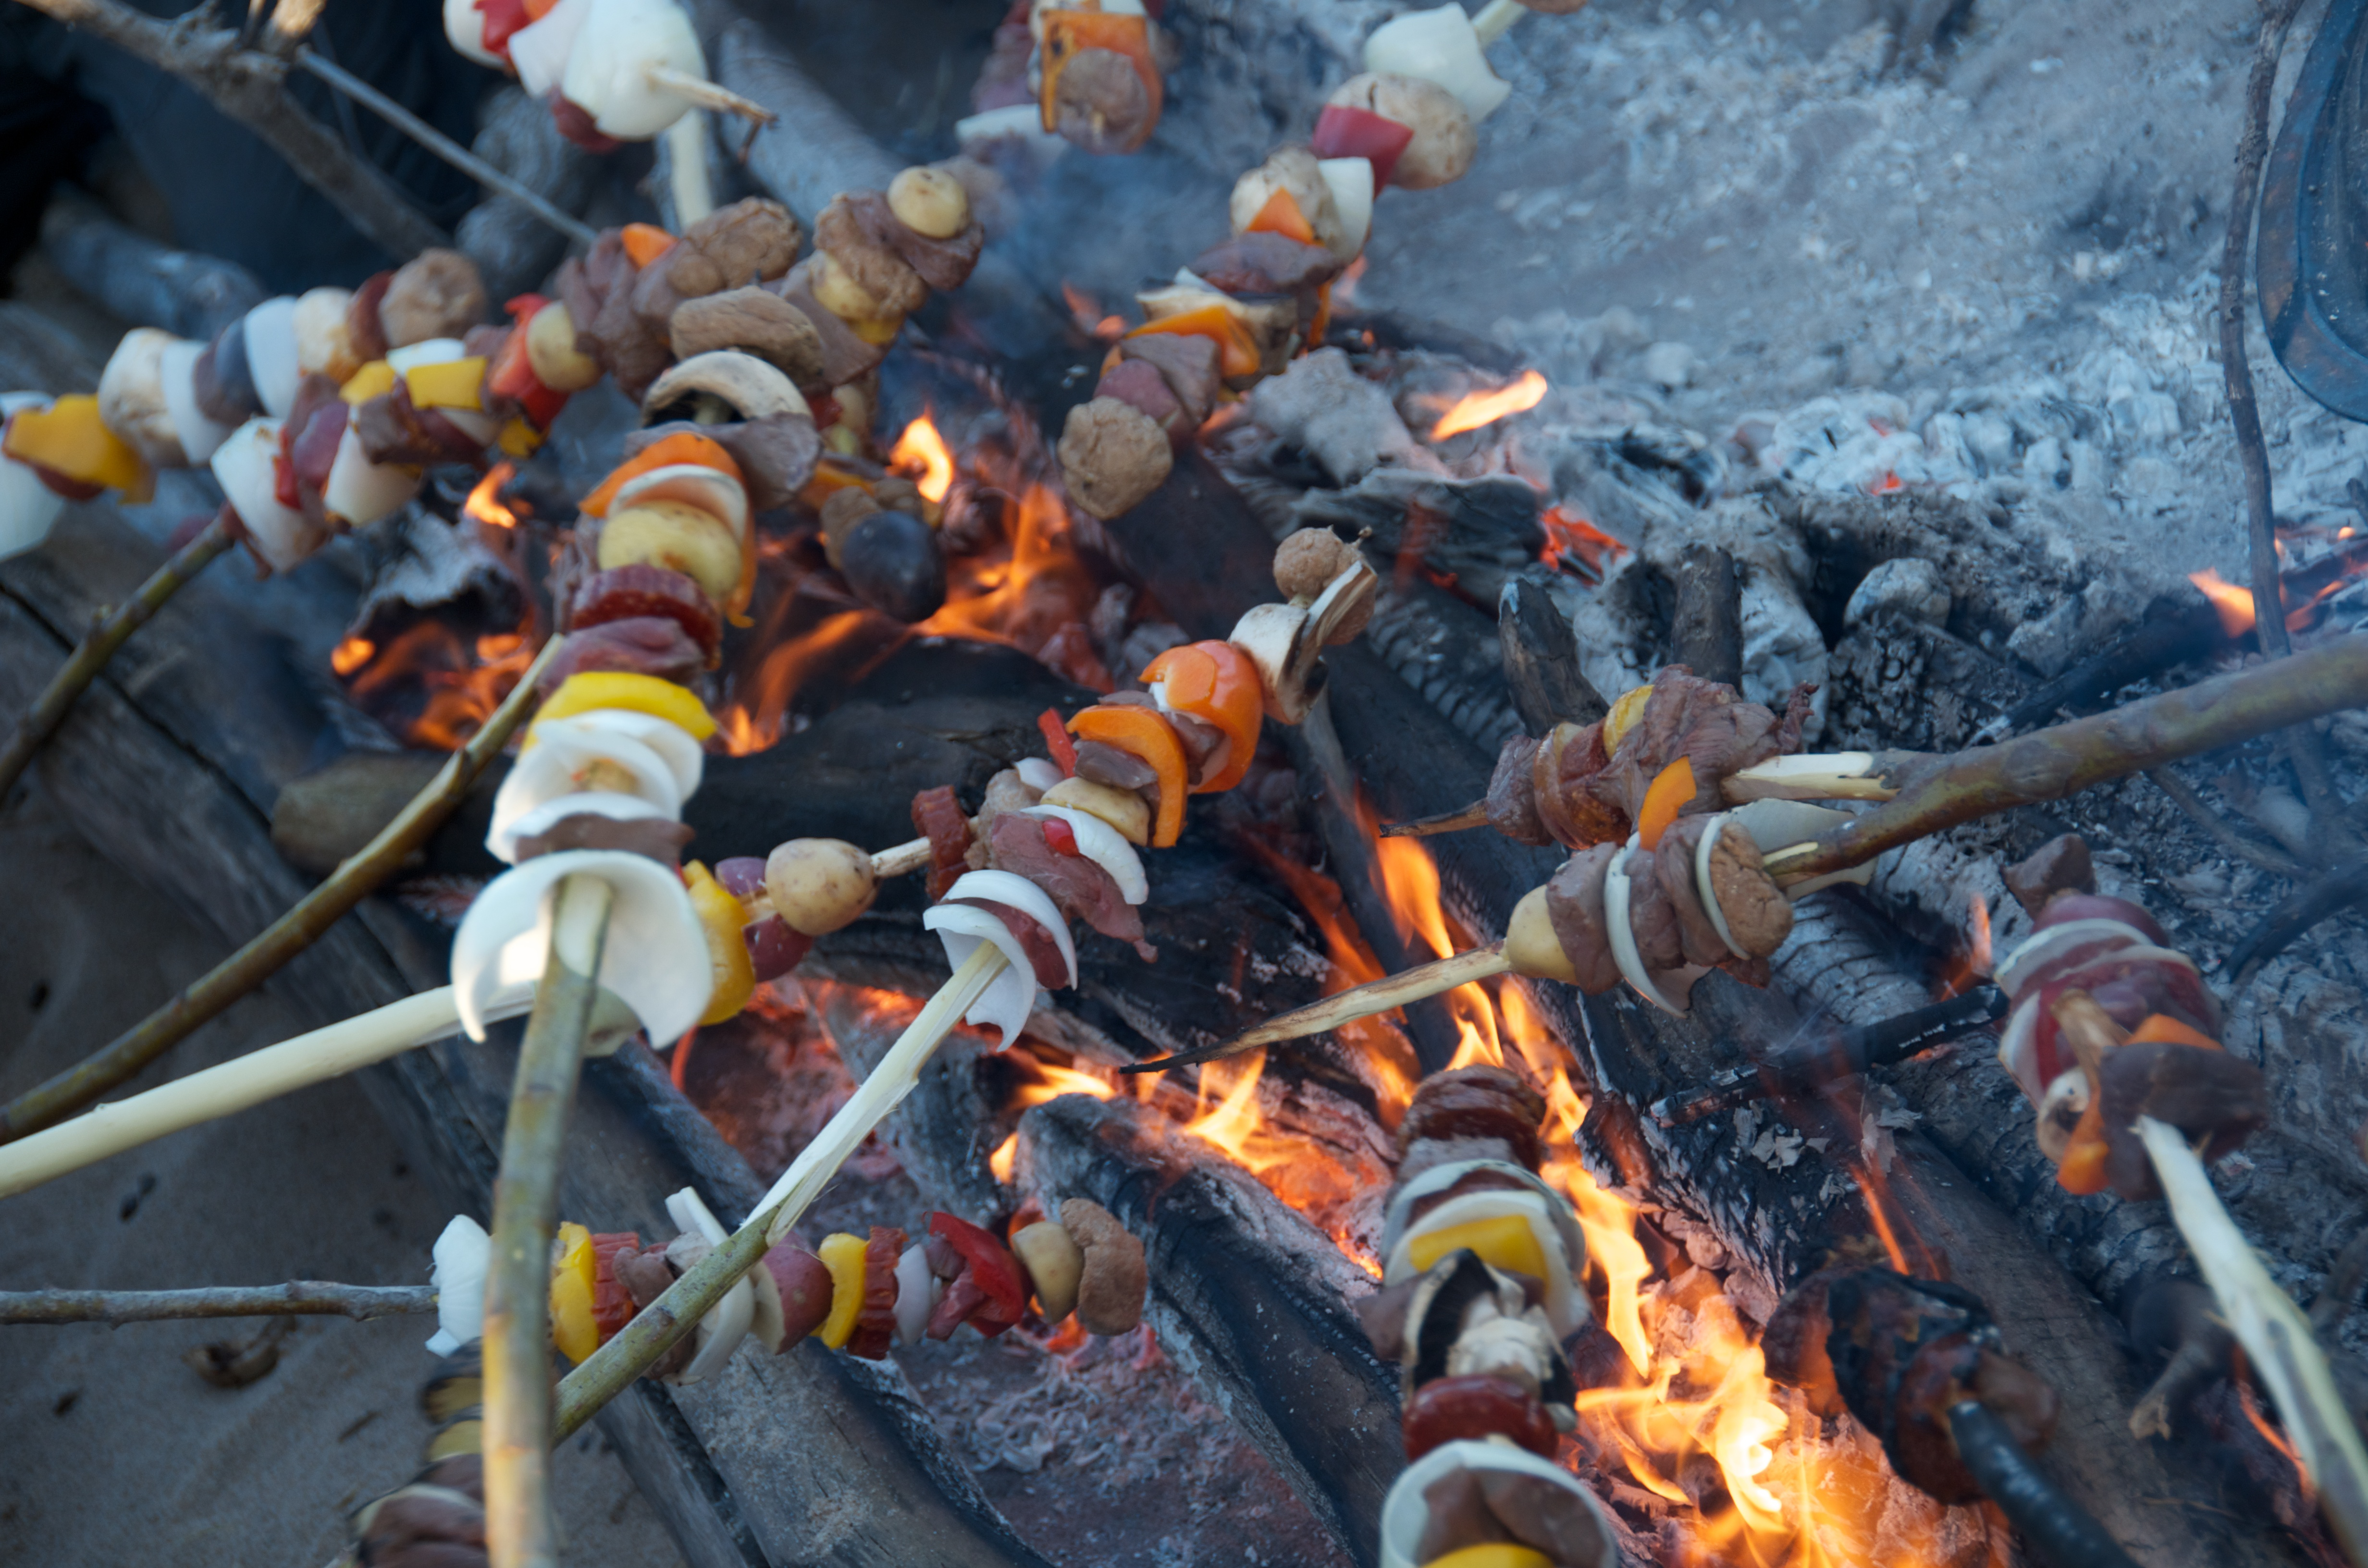 Dinner time. Different skewers are held over a campfire. The skewers have mushrooms, onions, peppers, beef, and potatoes on them.